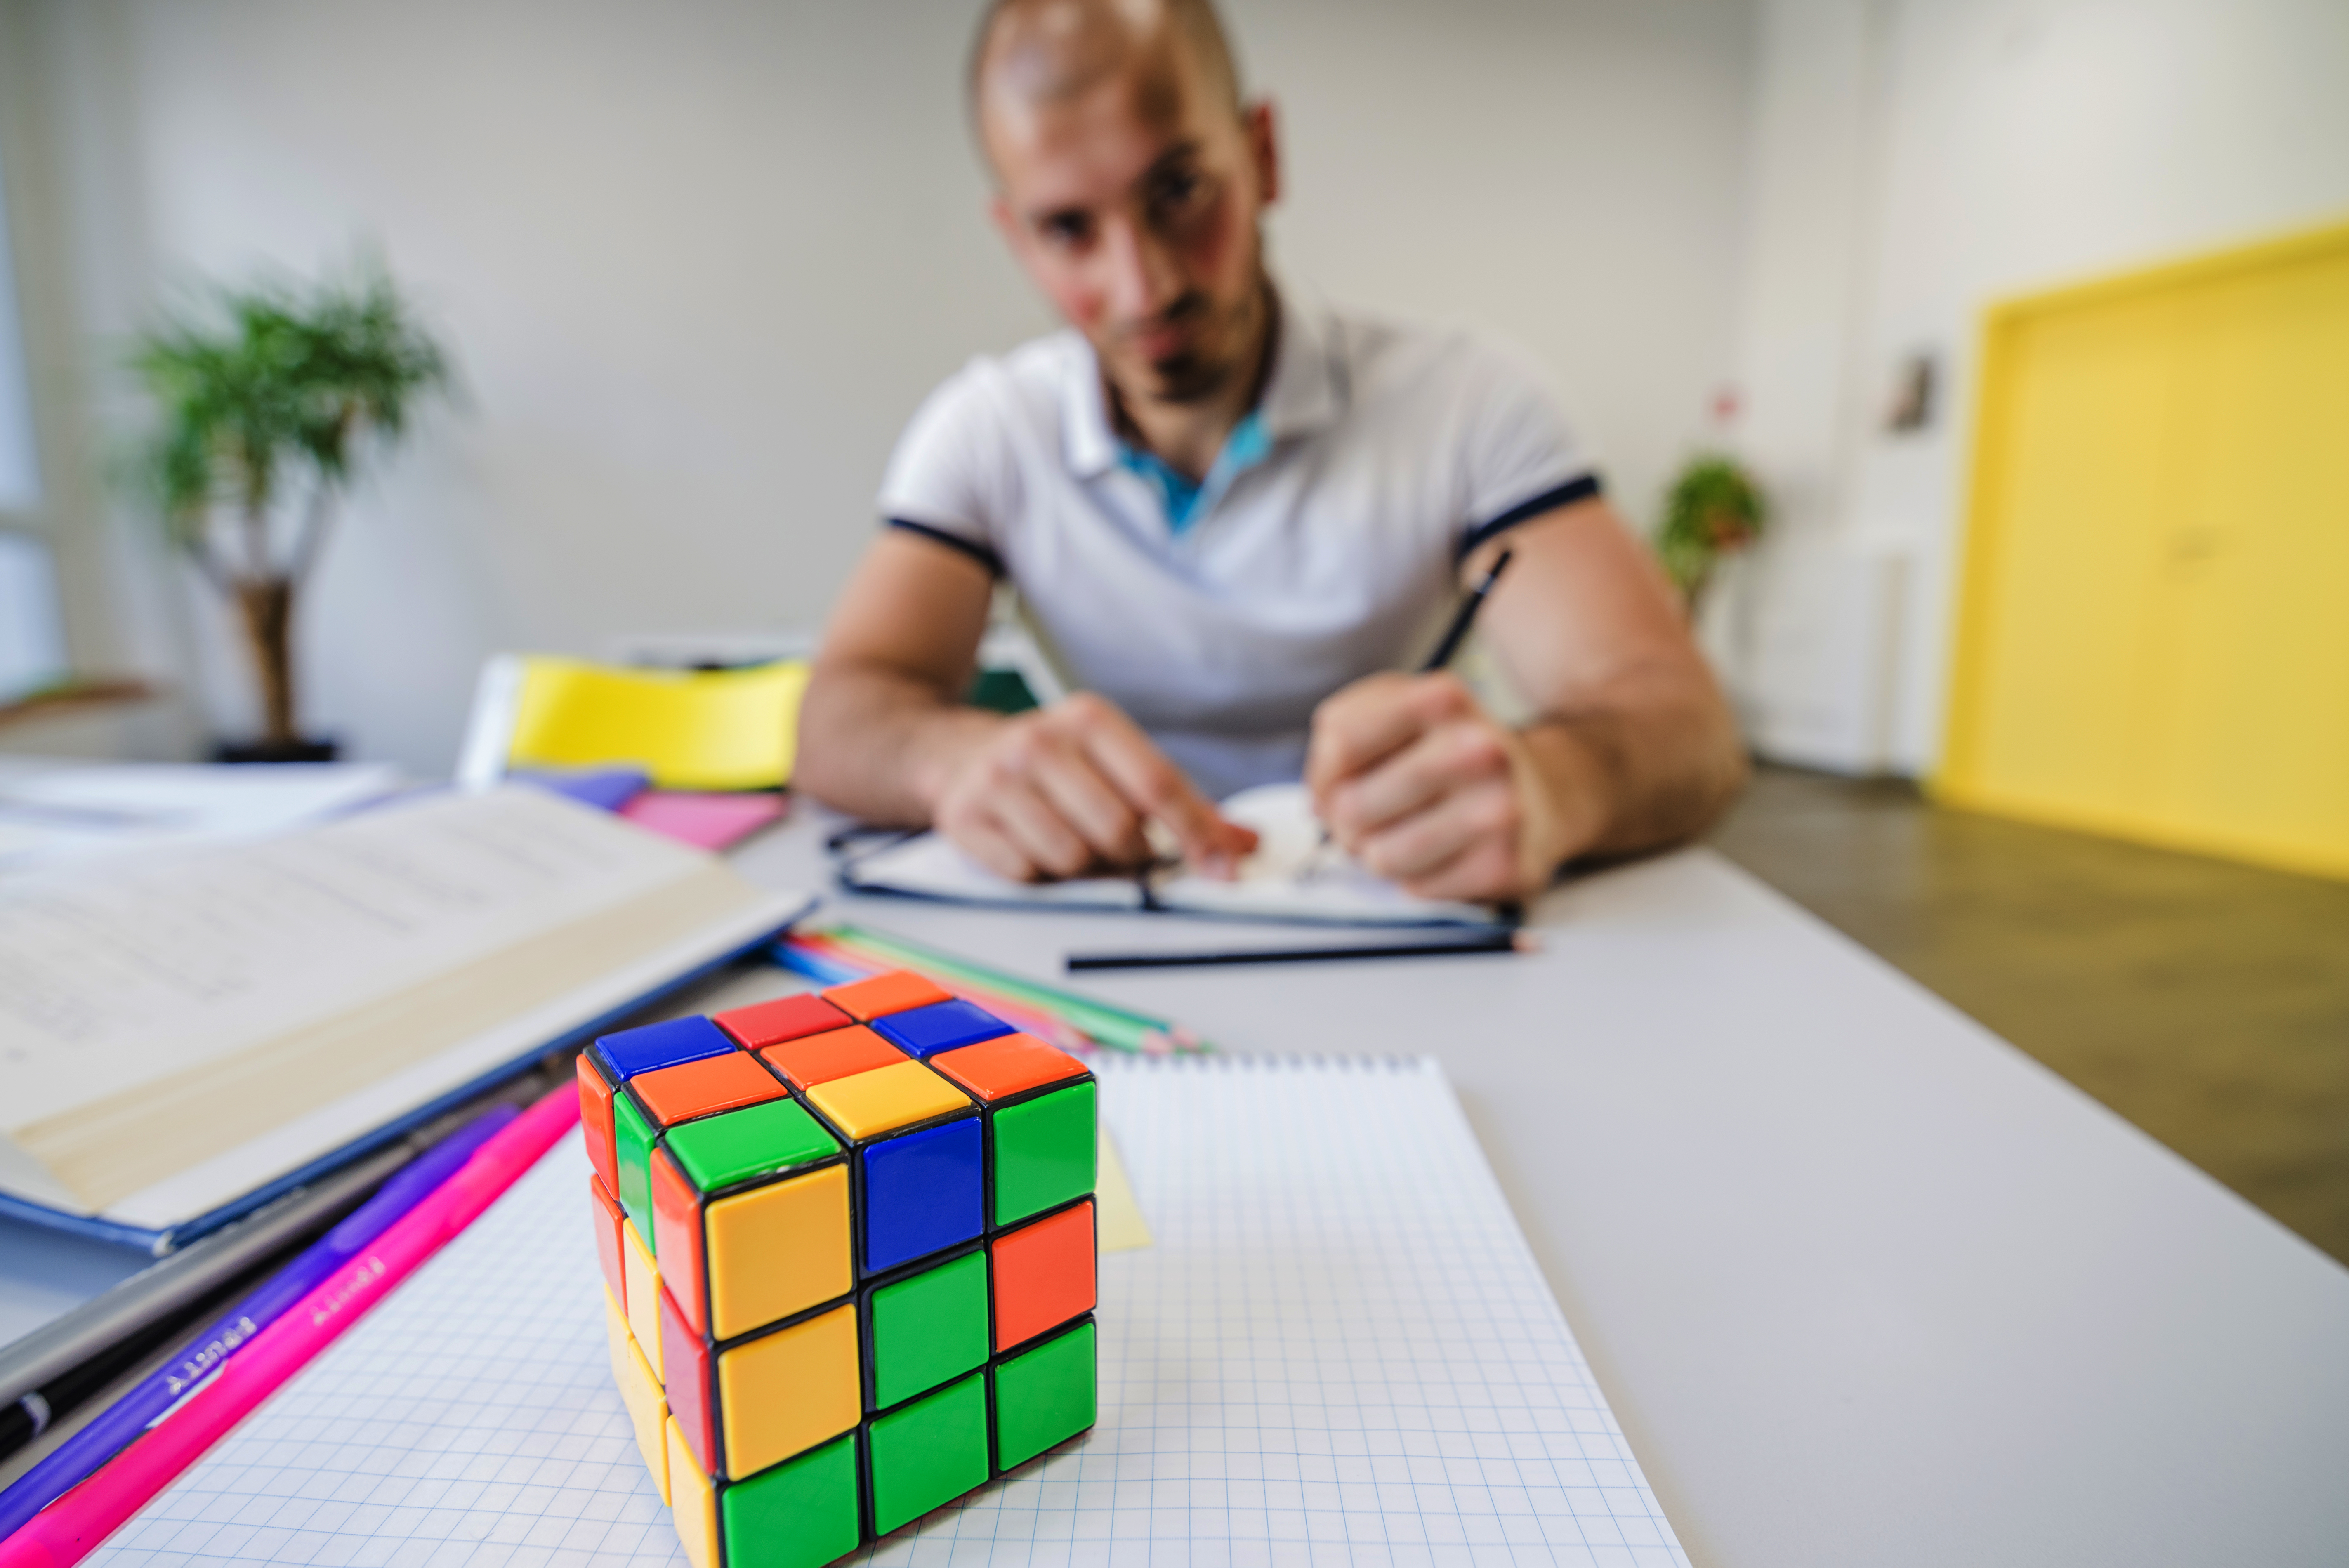 Photo of Rubik's Cube on a table, with a man sitting behind it and looking at it.